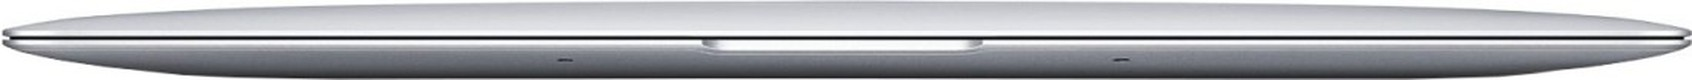 Best price on Apple MacBook Air MD761HN/A Ultrabook (Core i5 4th Gen/4 GB/256 GB SSD/MAC OS X Mountain Lion) - Side in India